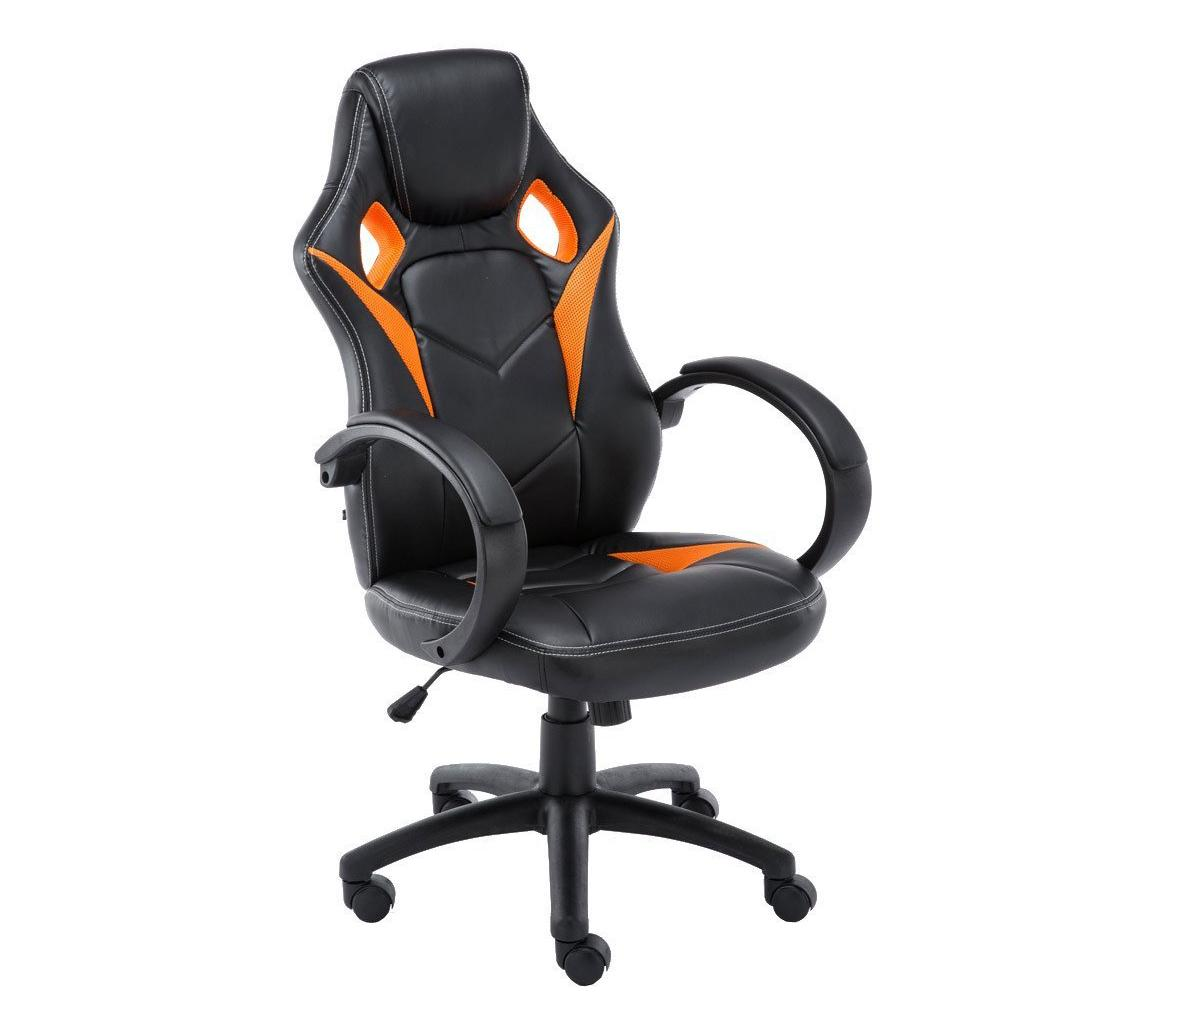 Silla gaming jarama dise o deportivo color negro y for Rebajas sillas gaming